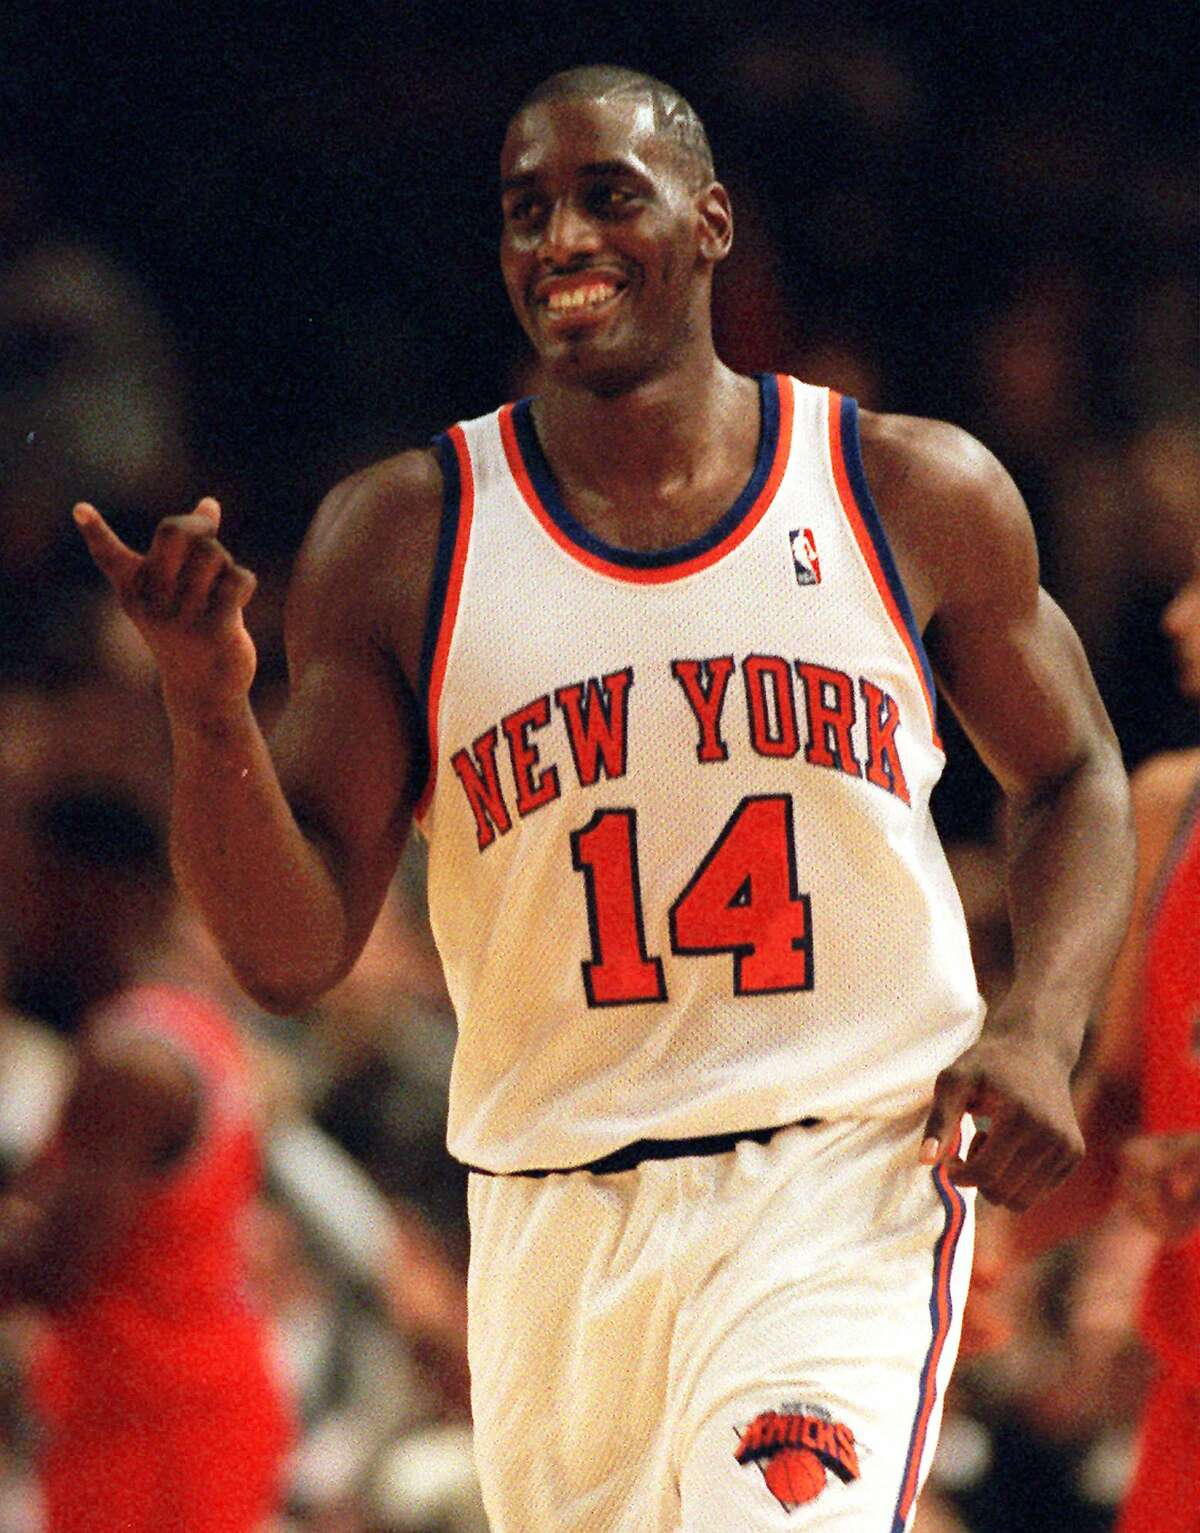 New York Knicks spokesman Jonathan Supranowitz confirmed Saturday that Anthony Mason, a rugged power forward who was a defensive force for several NBA teams in the 1990s, has died at 48.